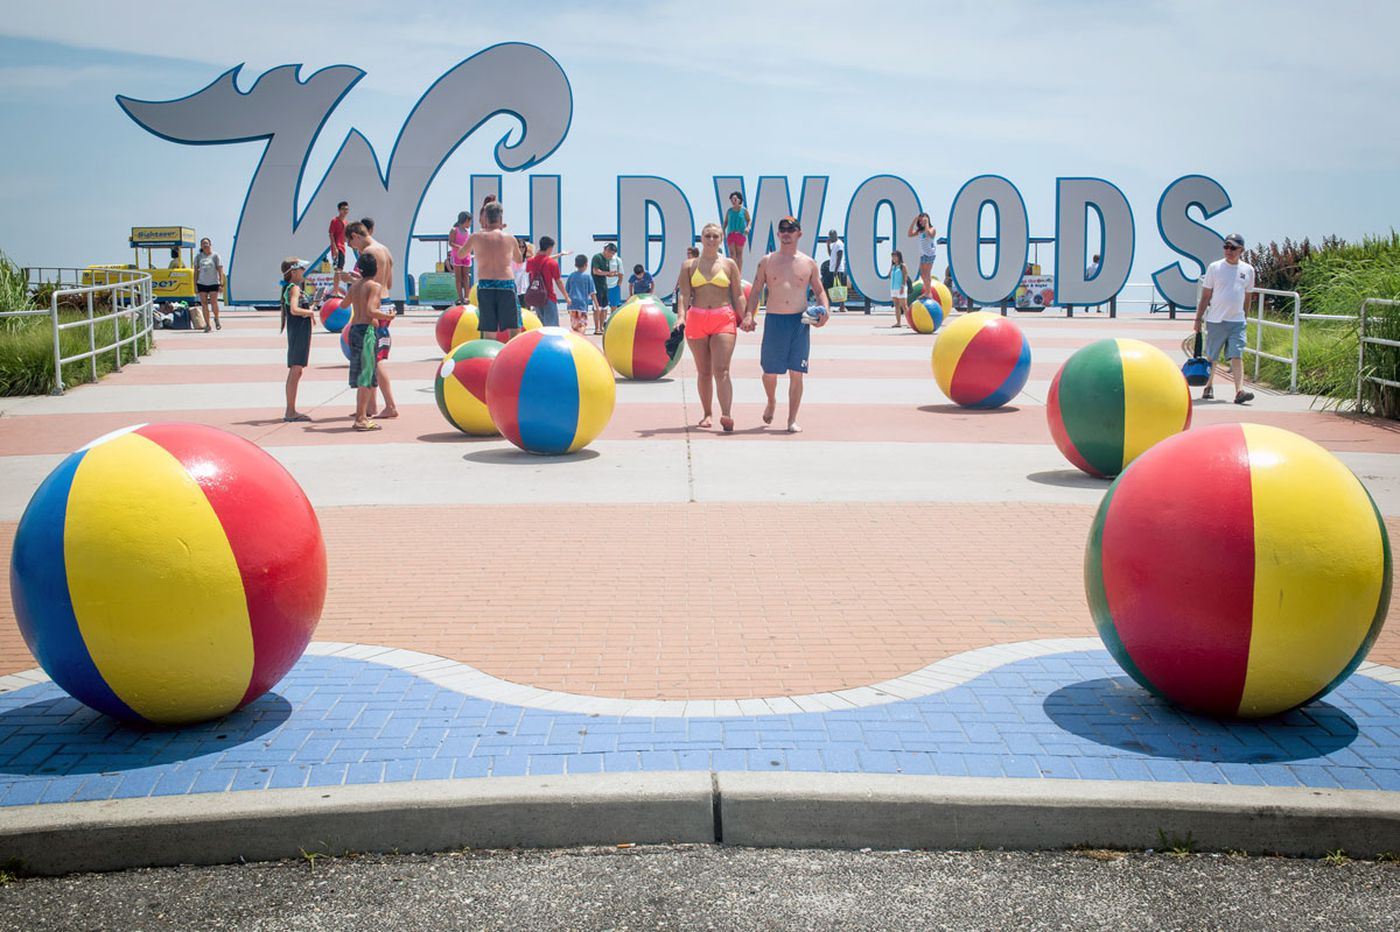 What's in a name? Everything, says Wildwood